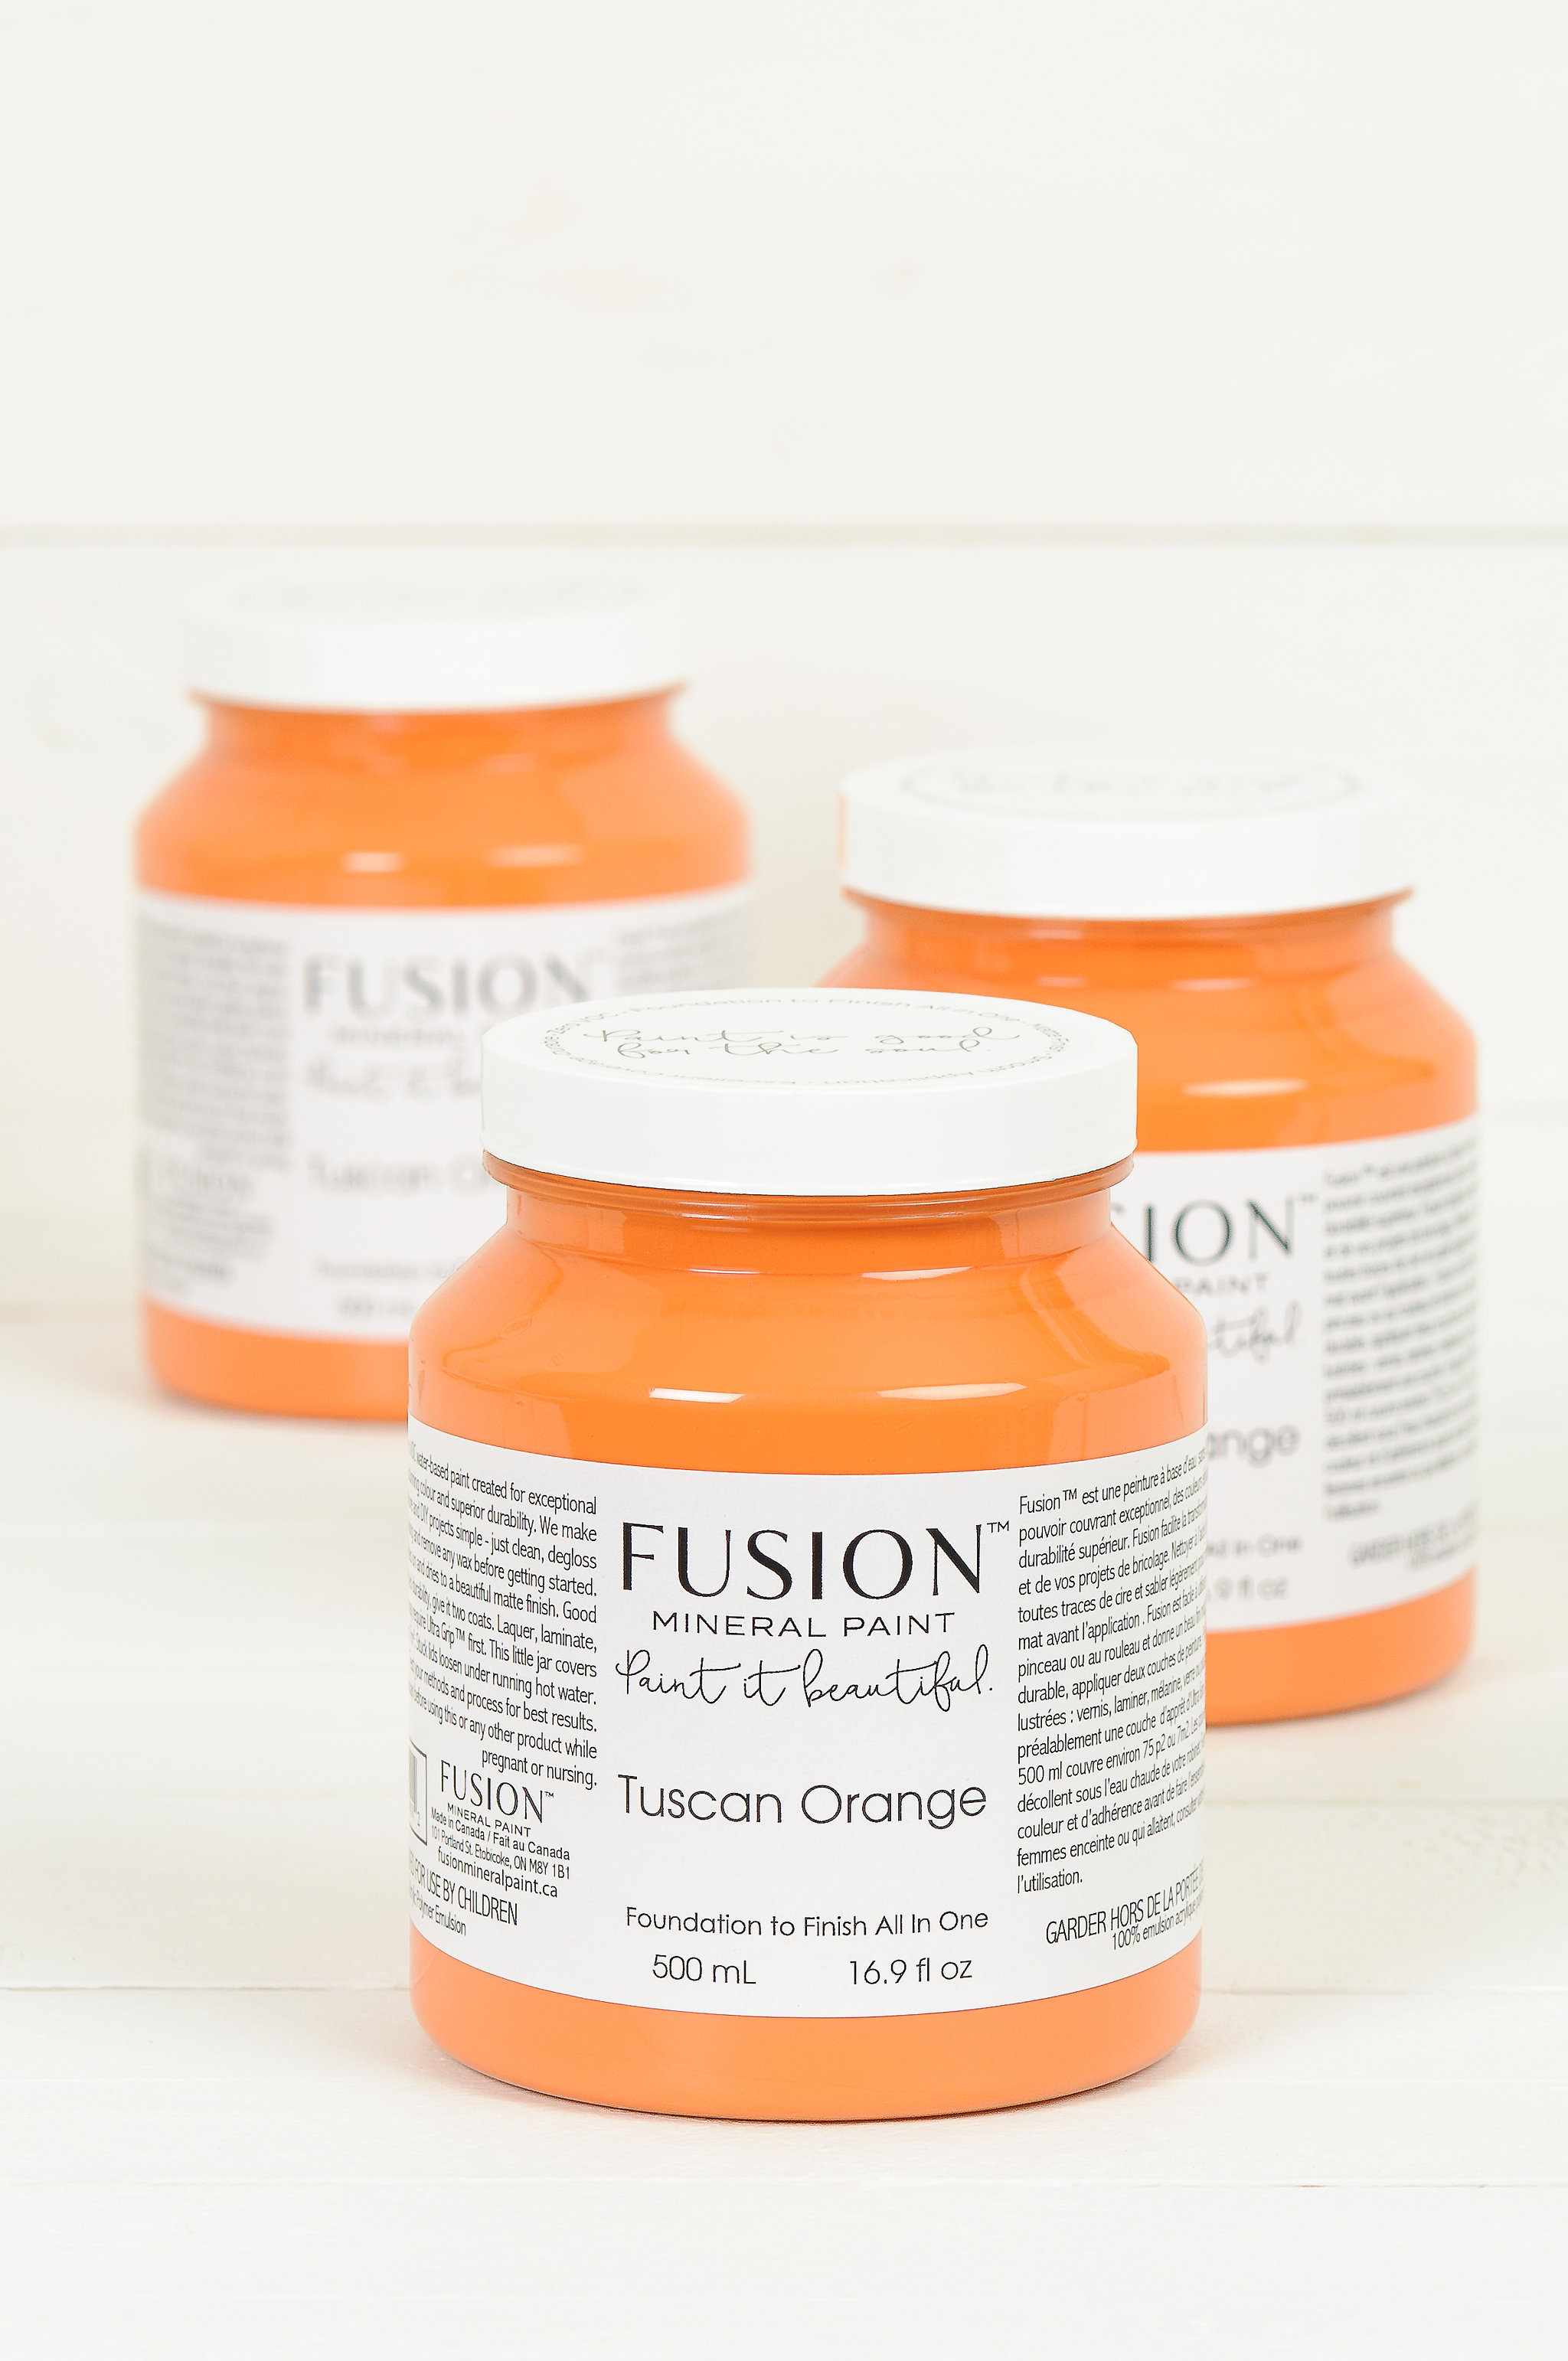 Bring A Little Bit Of Italy Into Your Home With Fusion S Tuscan Orange Fusionmineralpaint